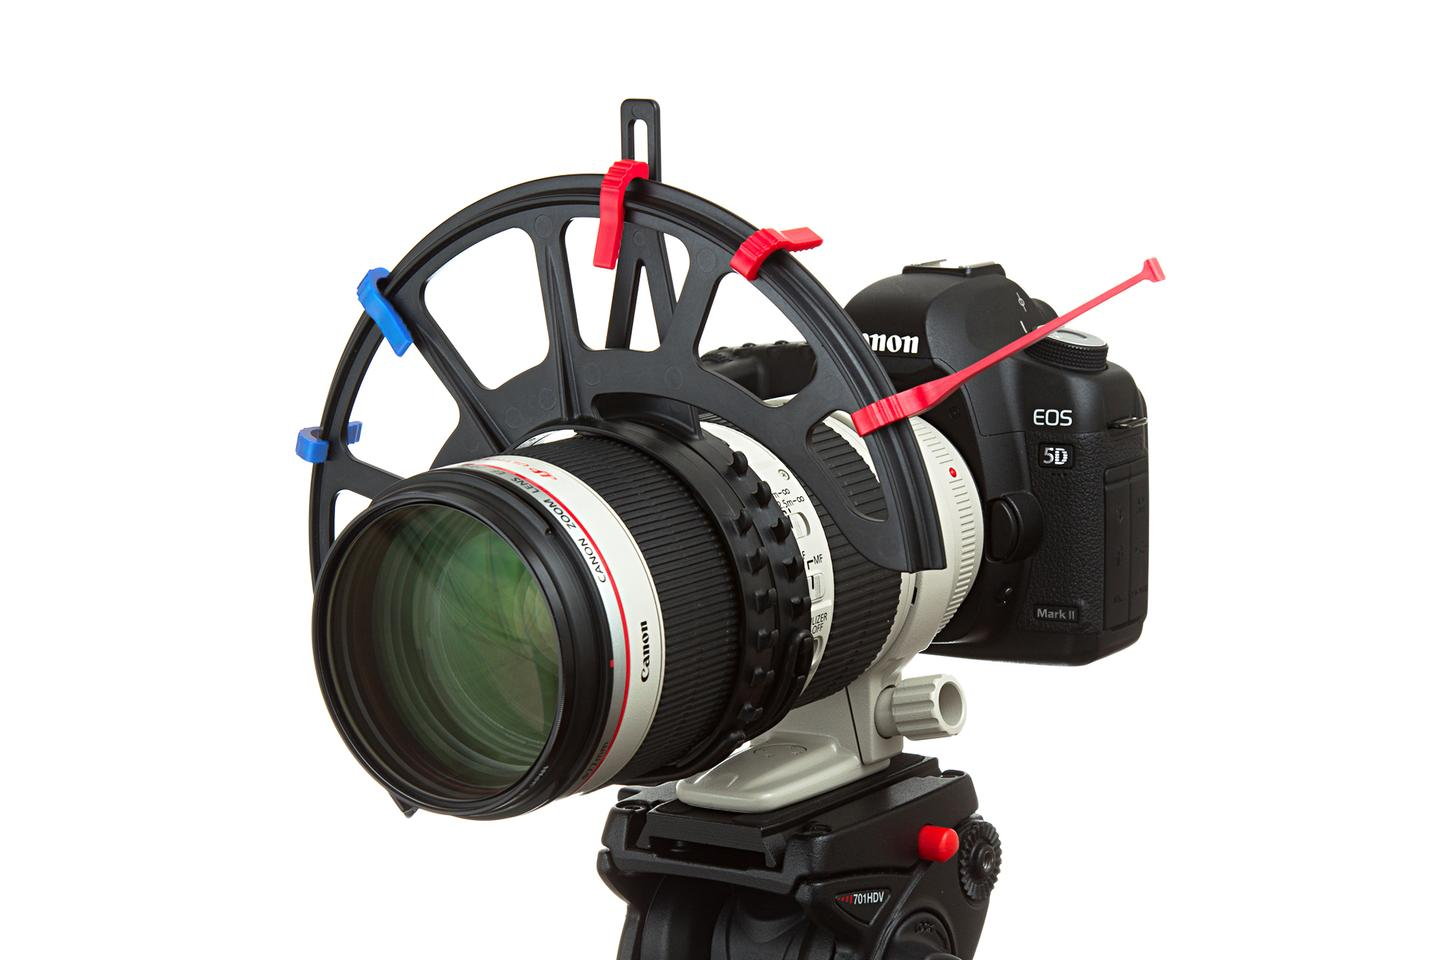 FocusMaker attaches to the focus ring of any DSLR lens